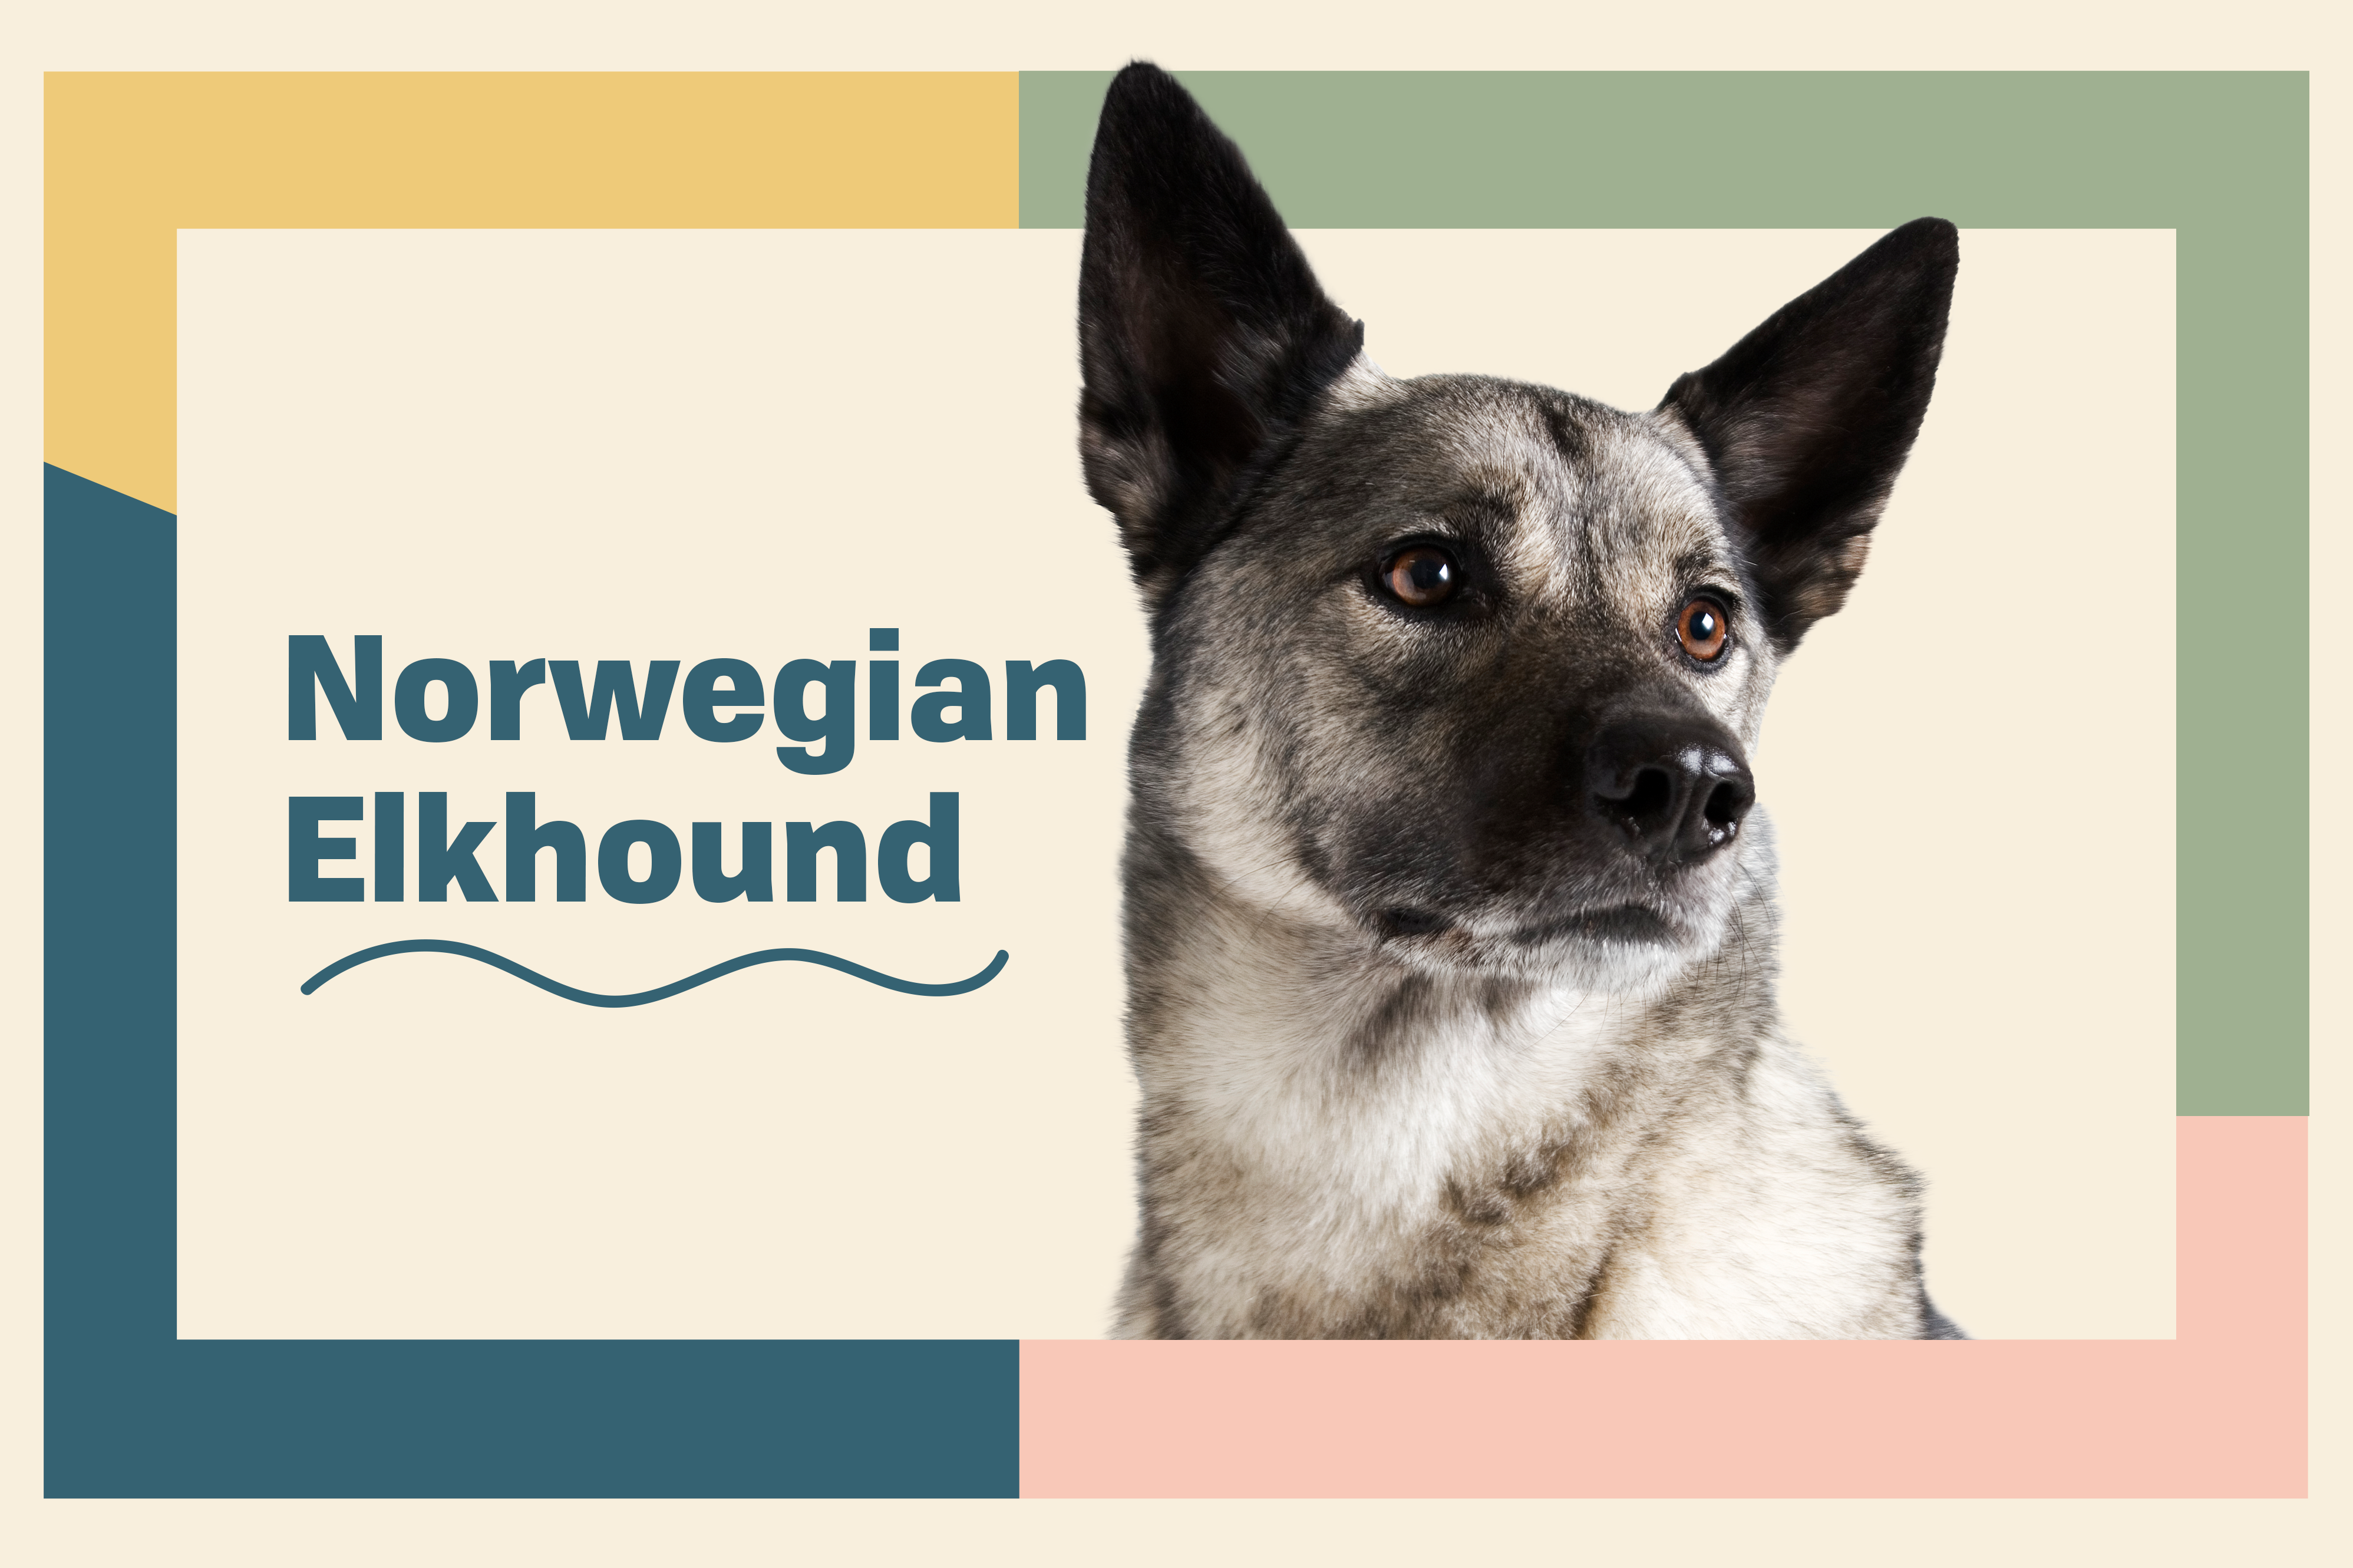 profile page for Norwegian Elkhound